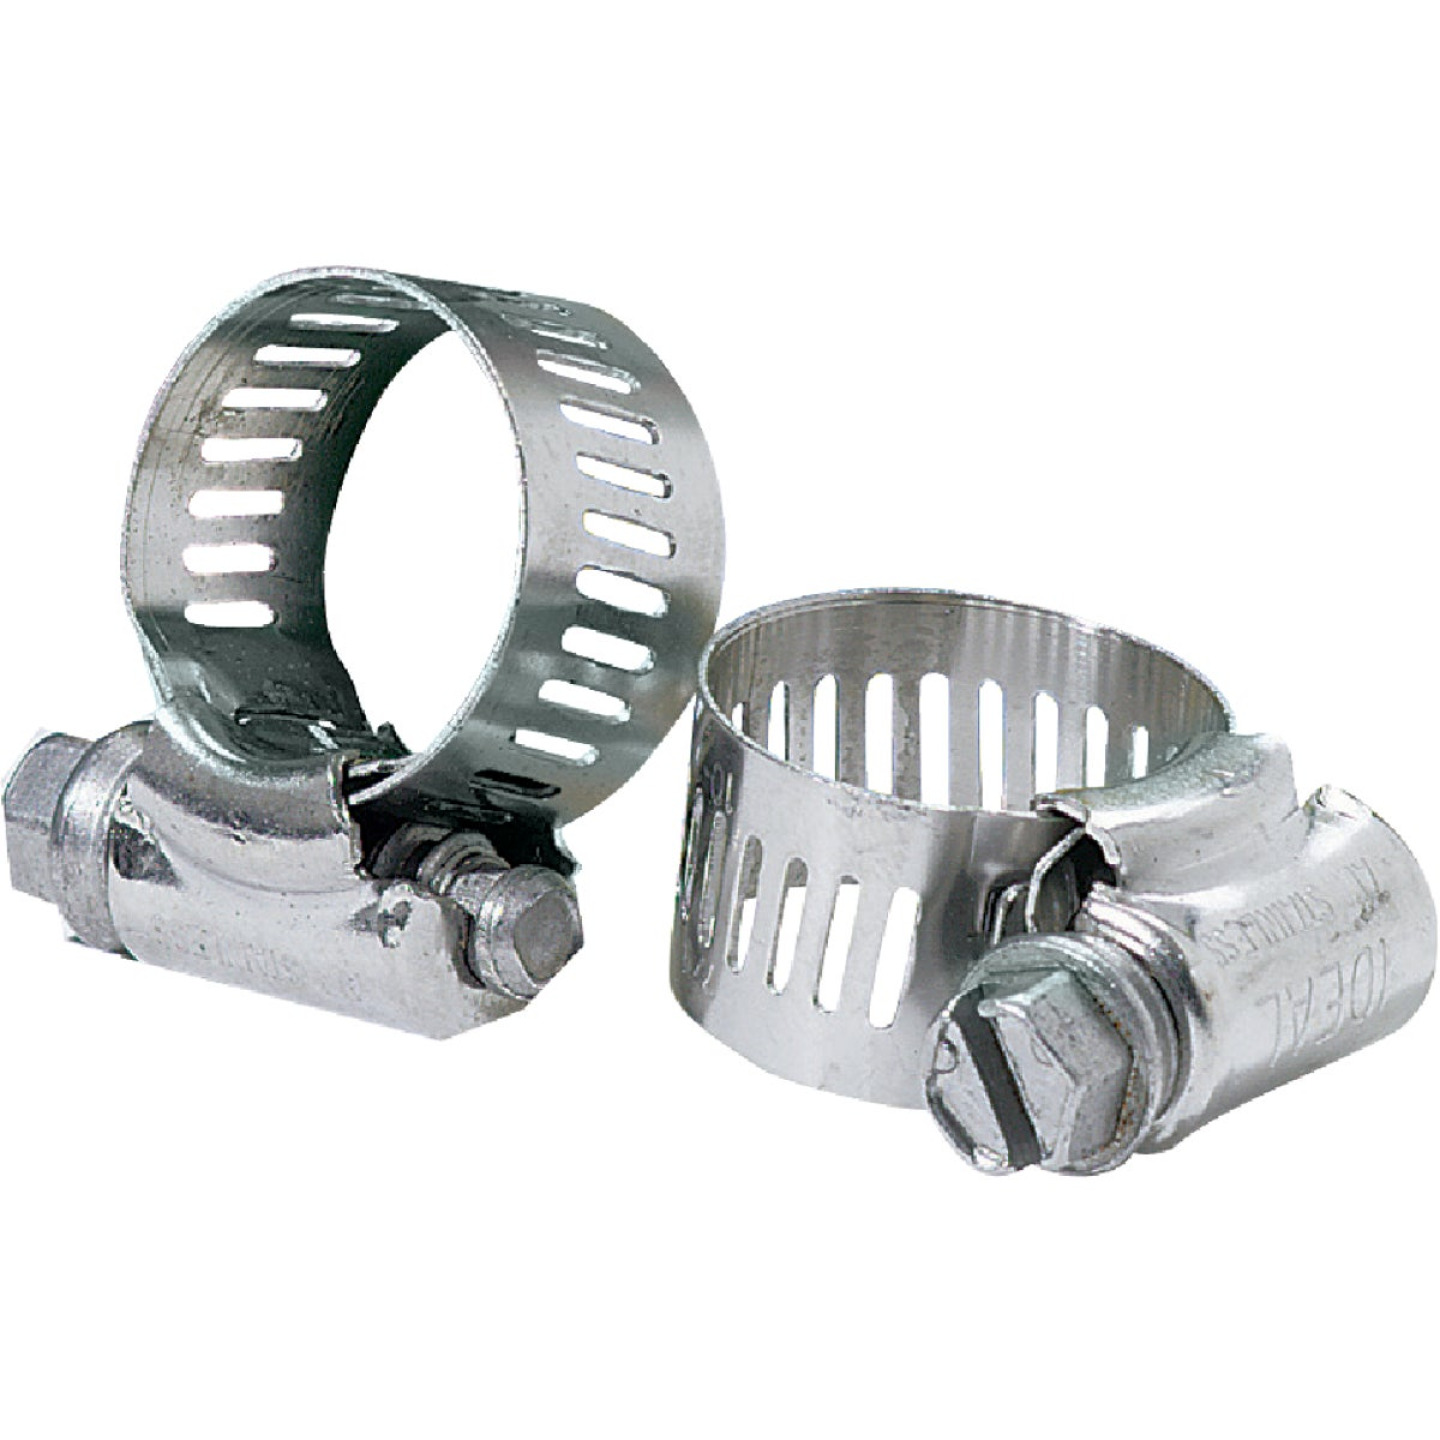 Ideal 1/2 In. - 1-1/4 In. 67 All Stainless Steel Hose Clamp Image 1